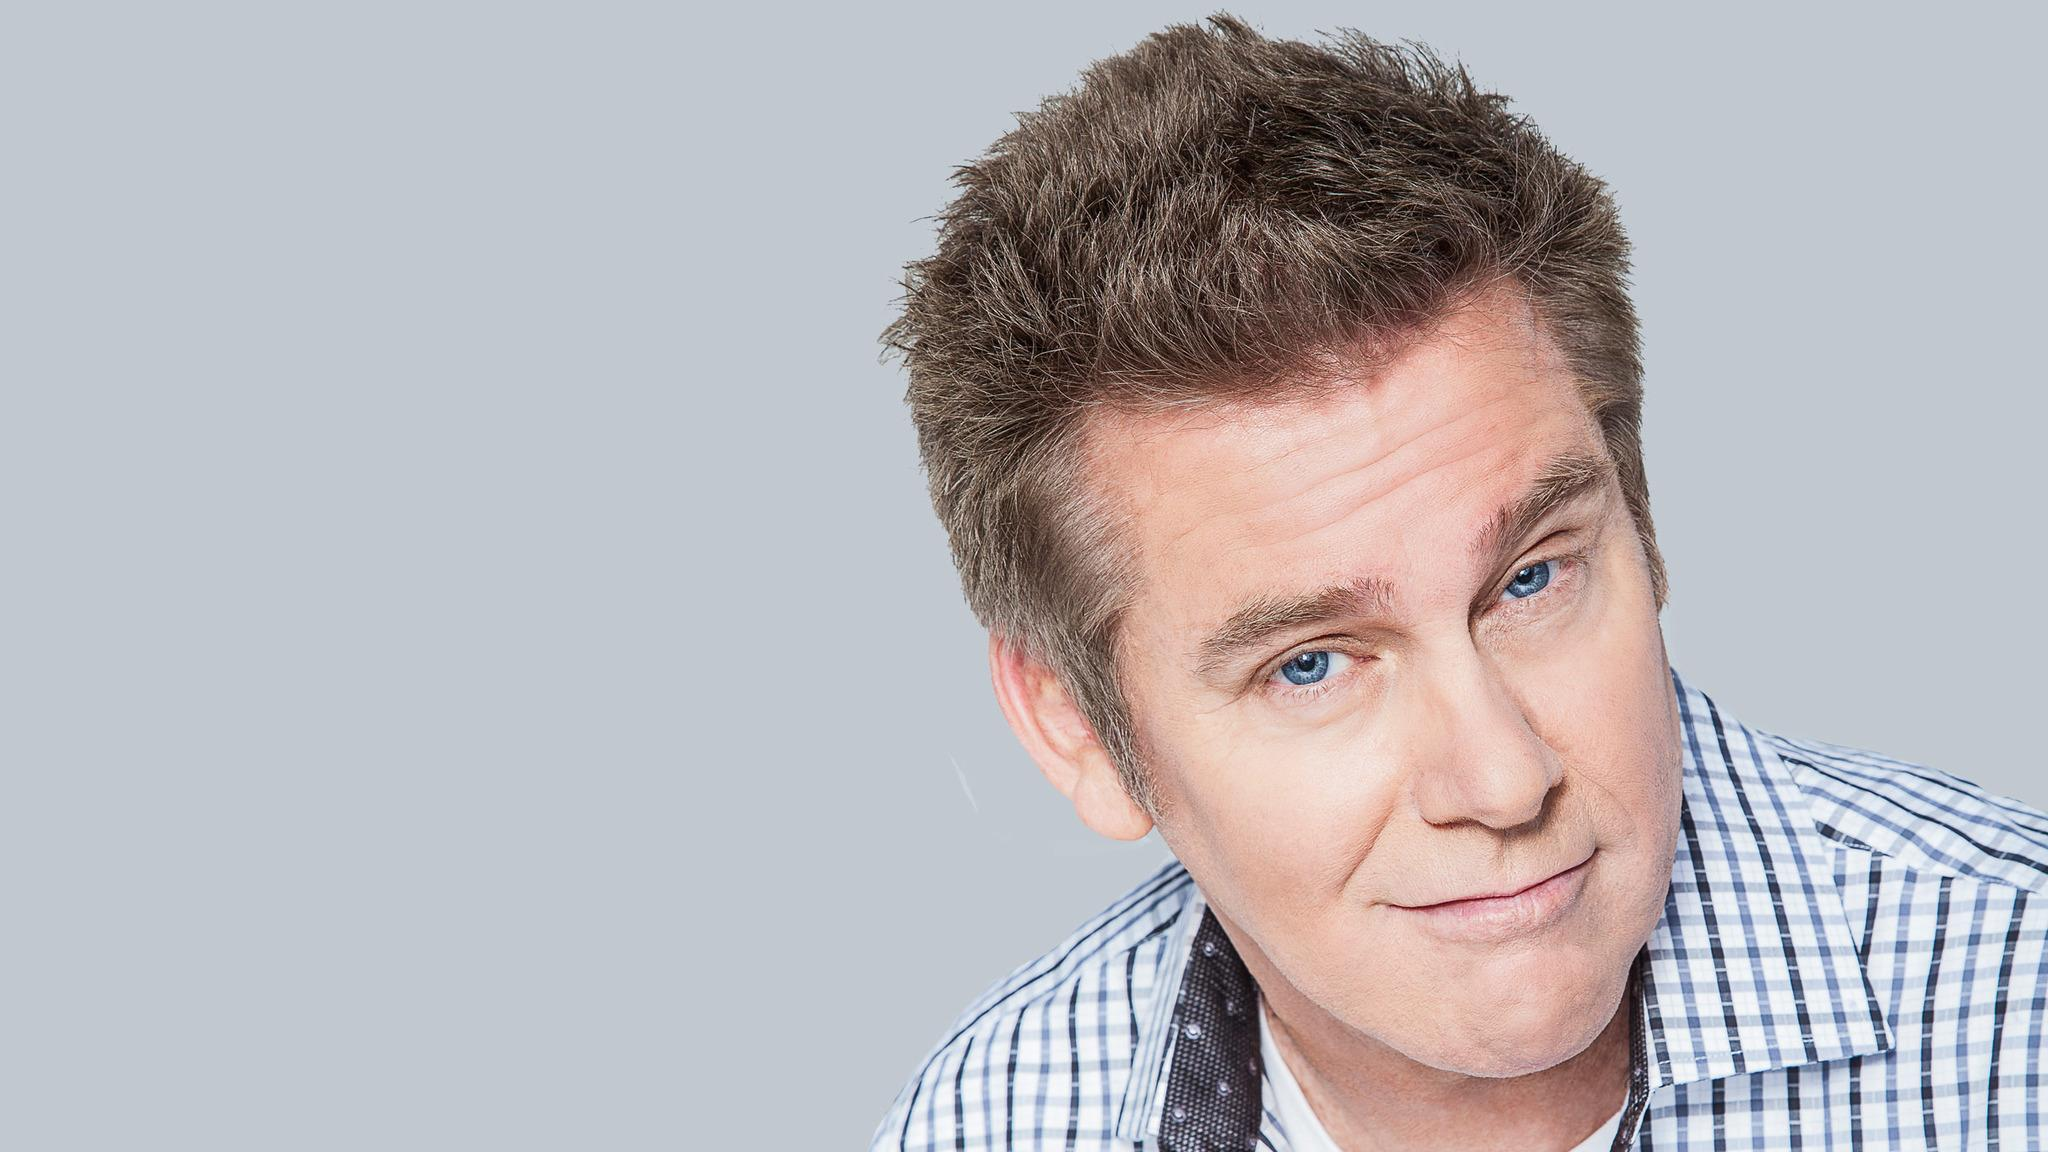 Brian Regan at Neal S Blaisdell Concert Hall